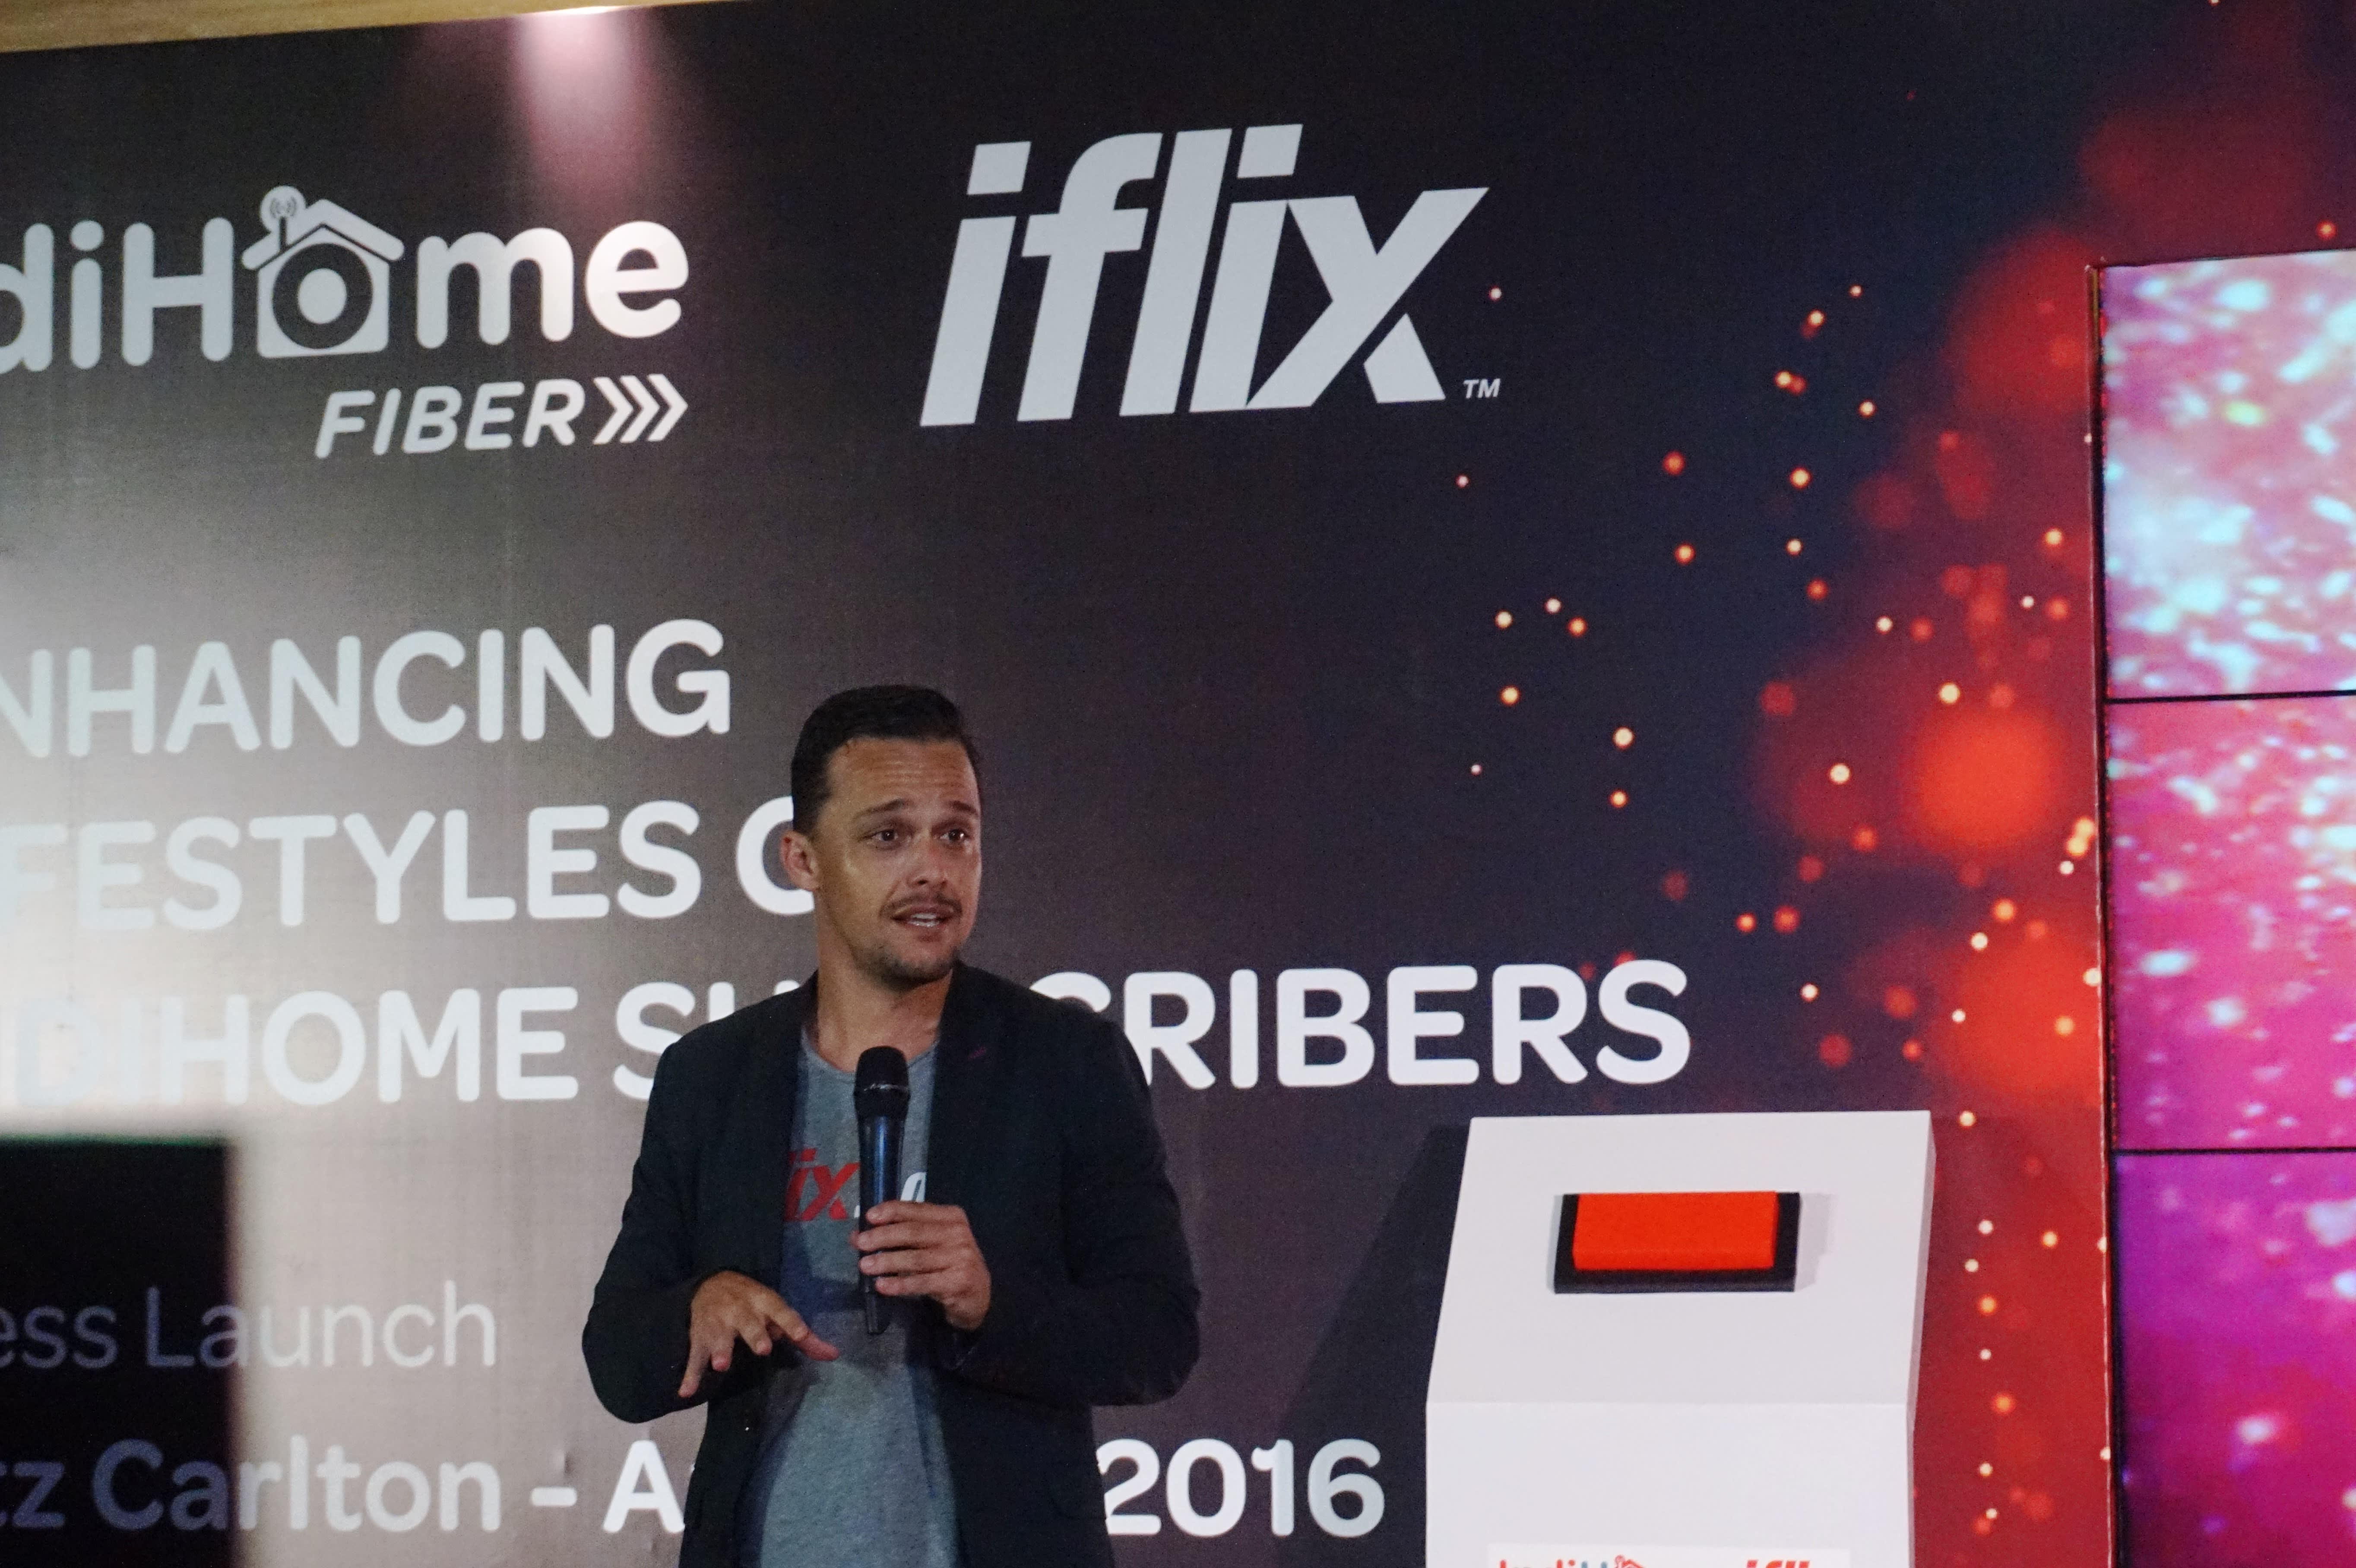 iFlix-Telkom fuels streaming competition with Indonesia